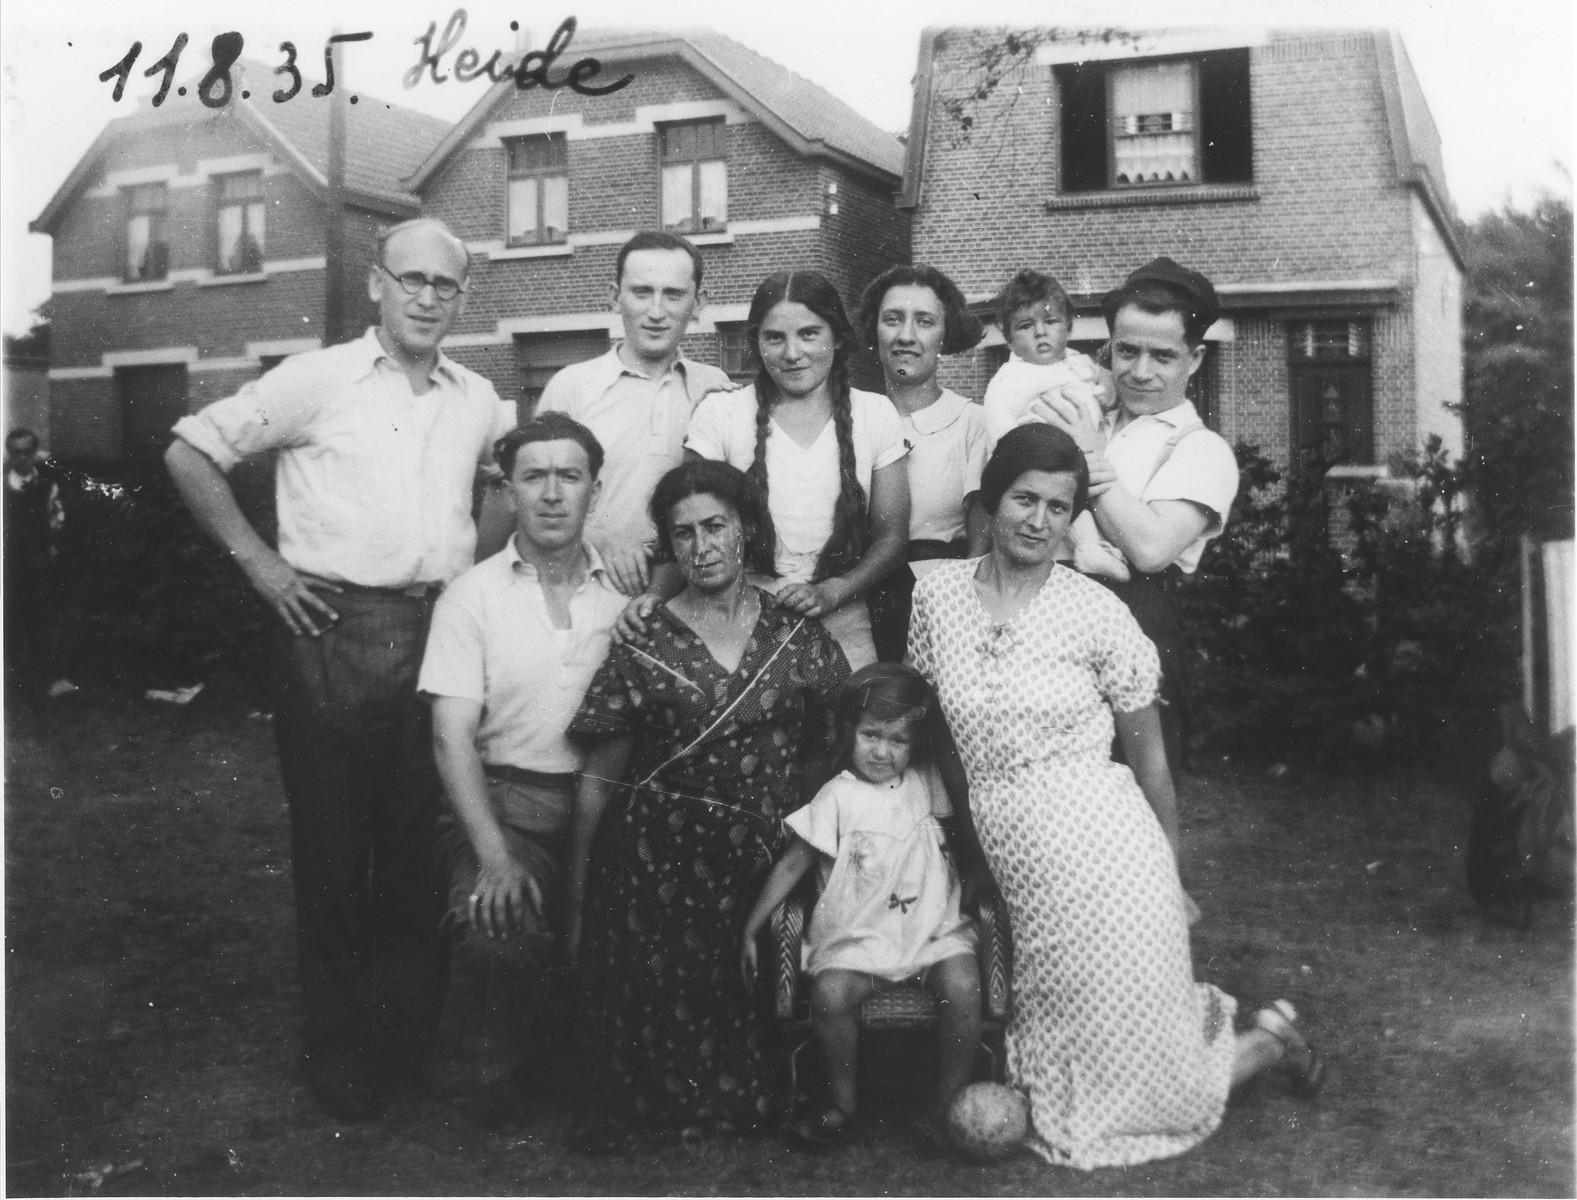 Members of the Silber family pose with relatives and friends in Heide, Belgium.  Pictured in the front row from right to left are Mania Silber, Berthe Silber, Chaya Shnoni (Mania's sister) and Yoshe Meller.  In the back row at the far right, Chaim Silber holds his daughter Sara.